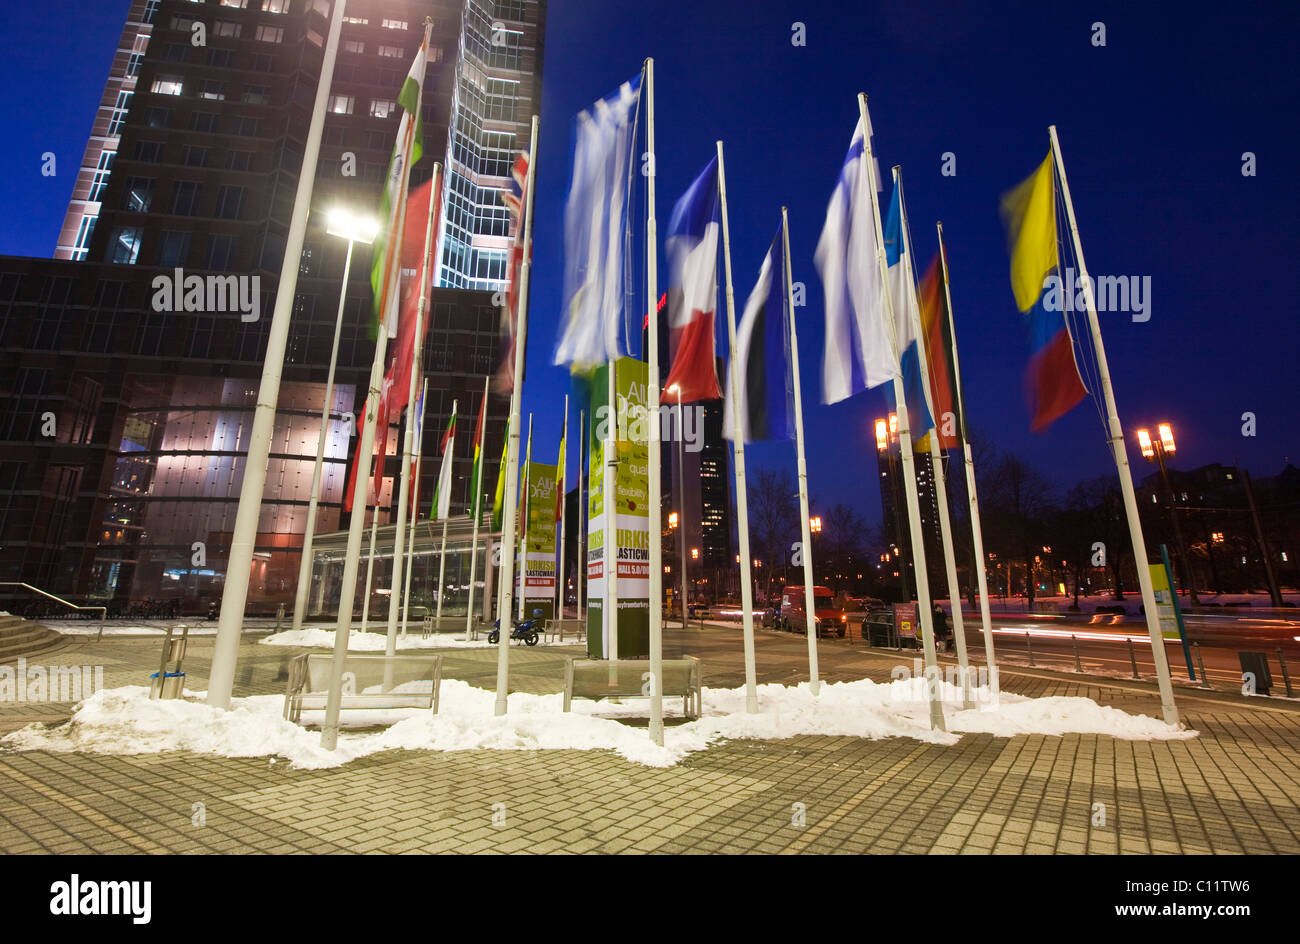 Flags of nations at the main entrance to the Messe Frankfurt Trade Fair, in front of the Messeturm building, Frankfurt, Stock Photo